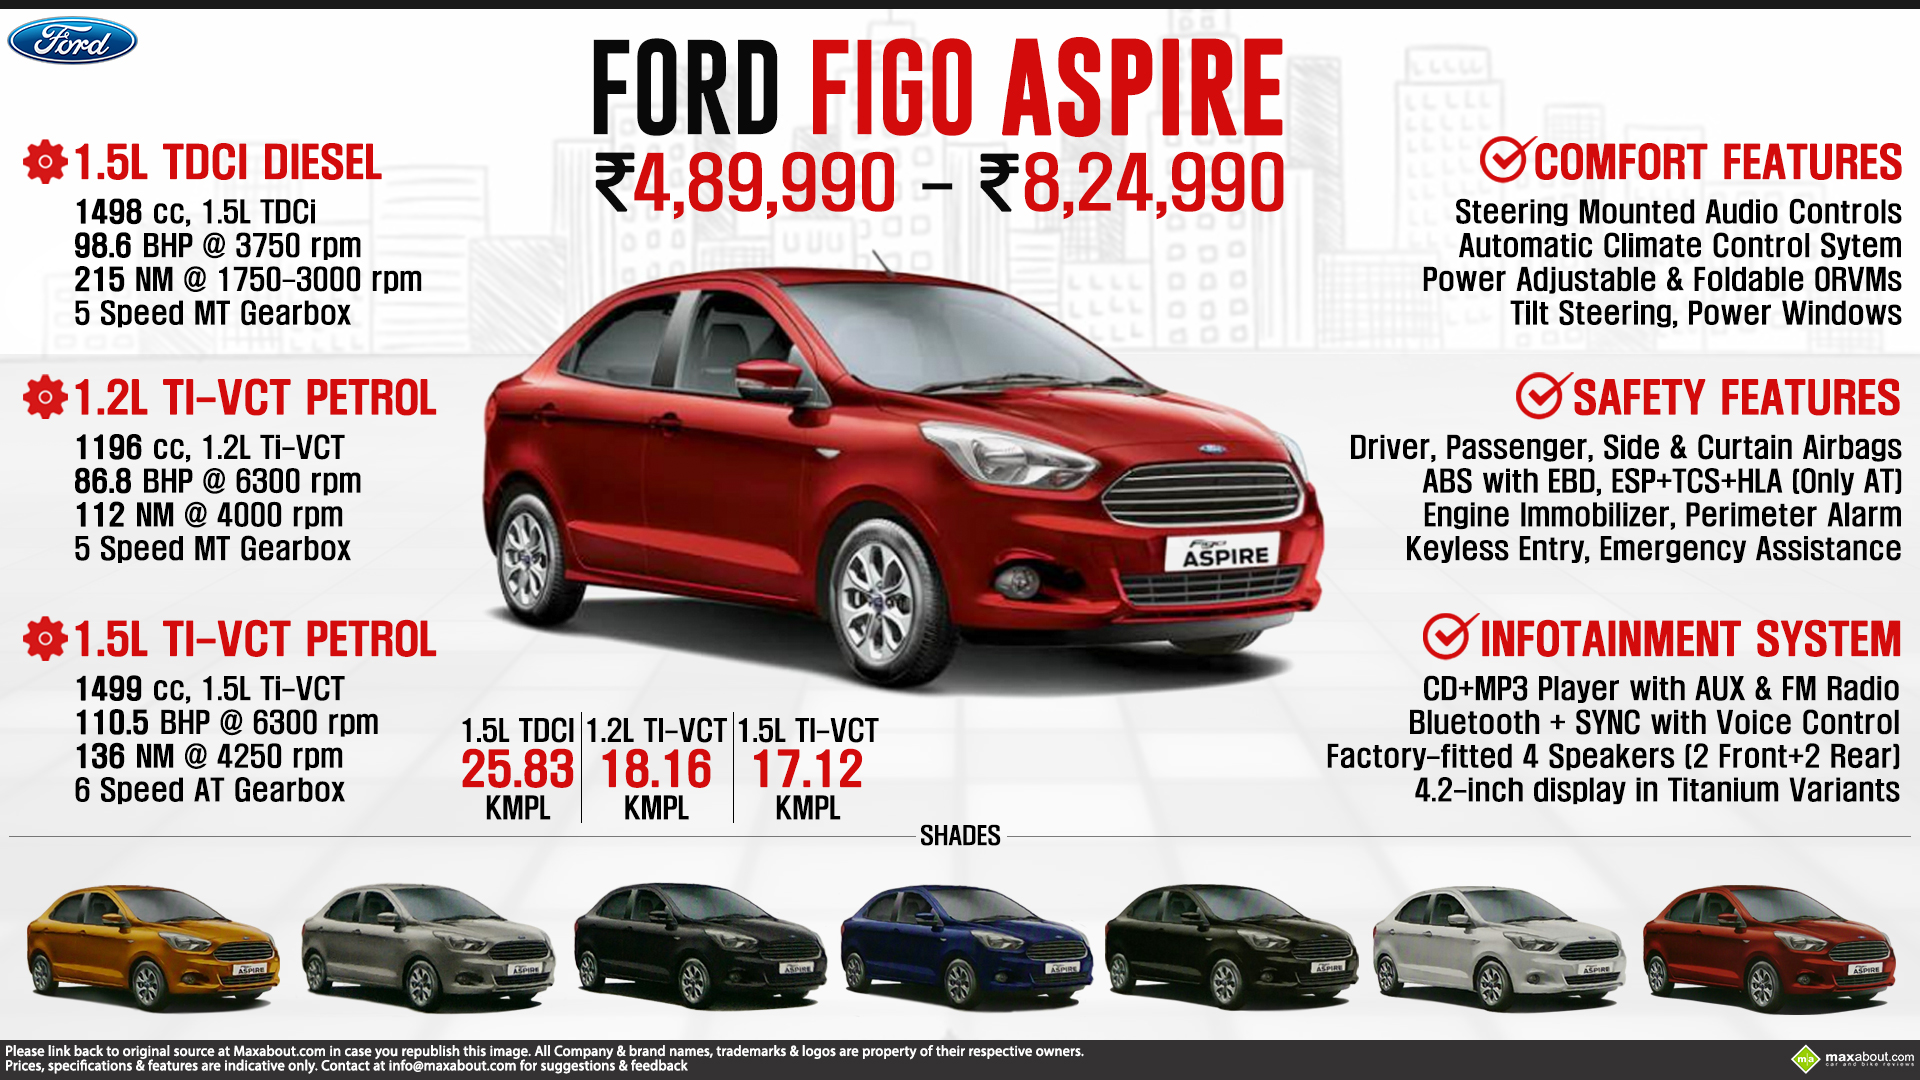 Ford Figo Aspire   What Drives You 1920x1080